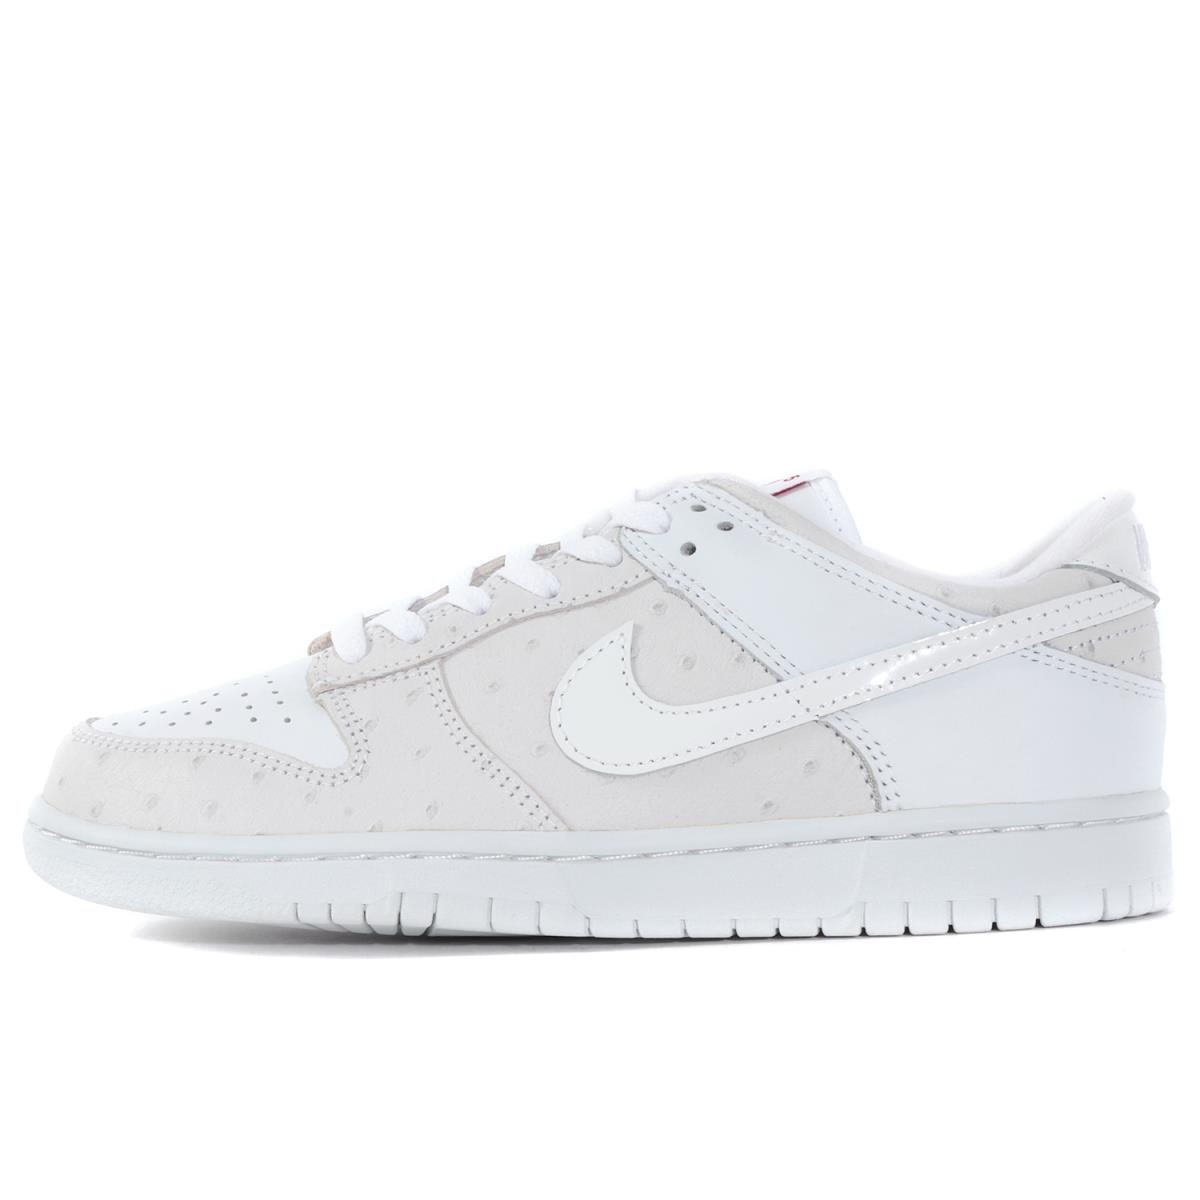 sports shoes efdd5 088ab NIKE (Nike) DUNK LOW ID White Japan white US8(26cm) ...